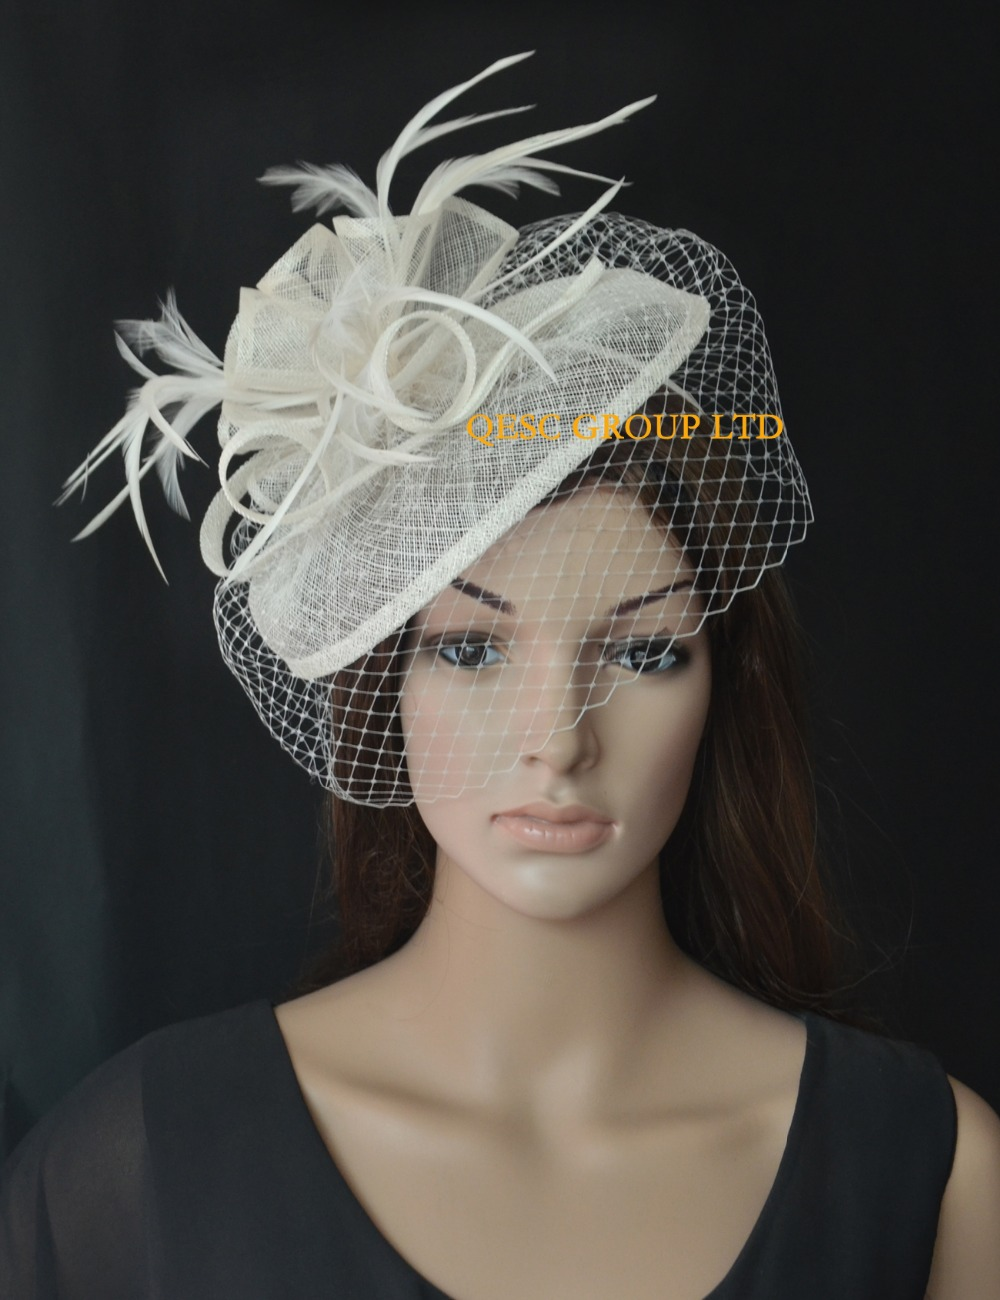 New Cream Ivory Sinamay Fascinator Hat With Feathers And Birdcage Veiling For Wedding Kentucky Derby Ascot Races Melbourne Cup In Hair Accessories From